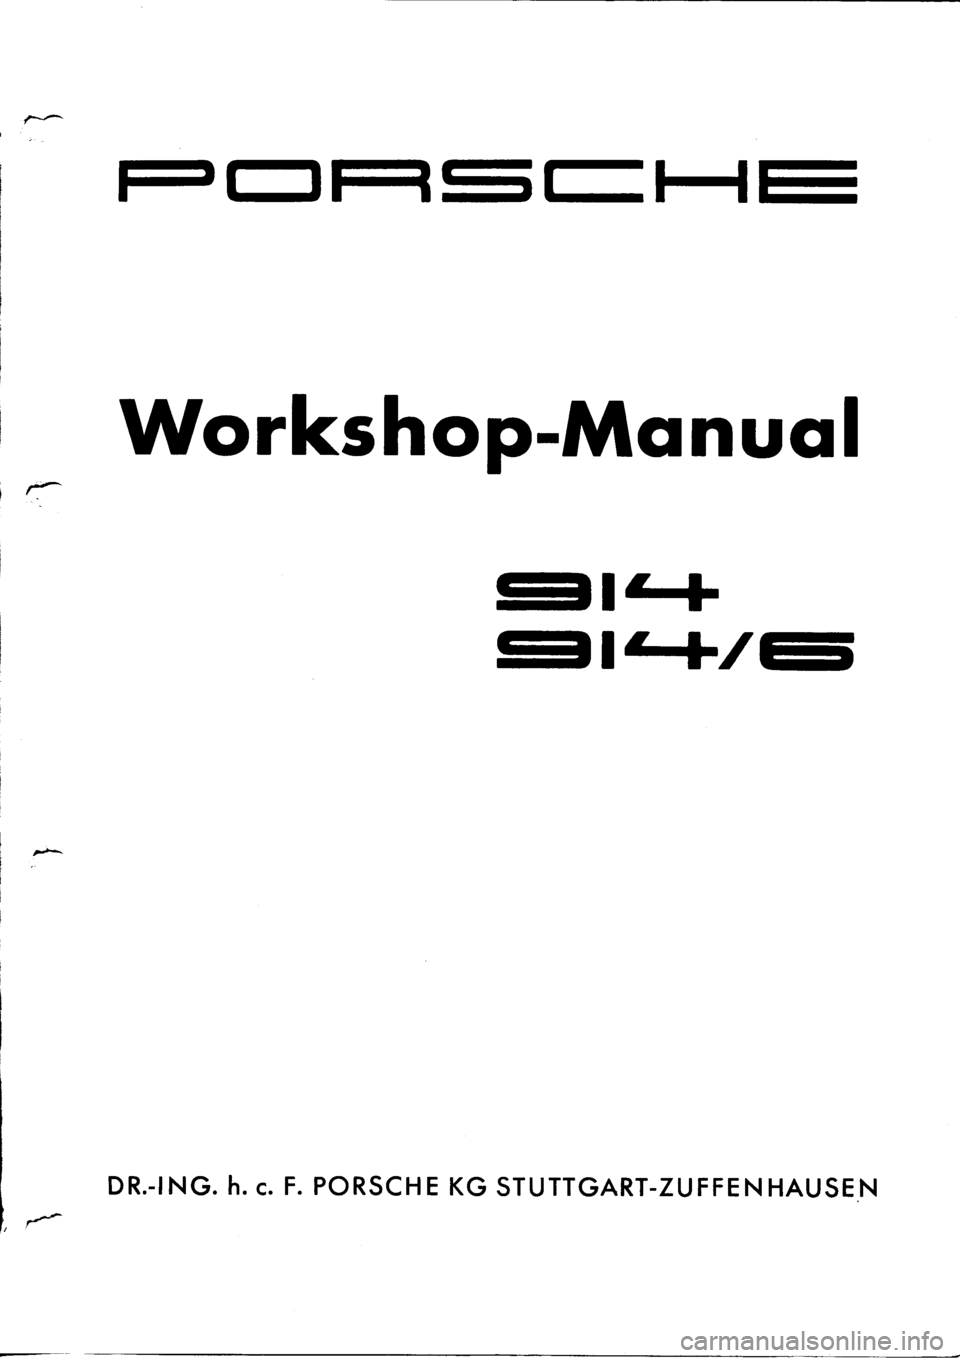 1970 Porsche 914 Engine Workshop Manual together with Removing Instrument Panel From A 2002 Toyota Ta a moreover How To Remove Cluster In A 1995 Eagle Summit moreover 2007 Hyundai Azera Coolant Lower Intake Manifold Repair Instruction Manual in addition Diagram How To Install Front Fender Of 1998 Isuzu Amigo. on eagle talon water pump